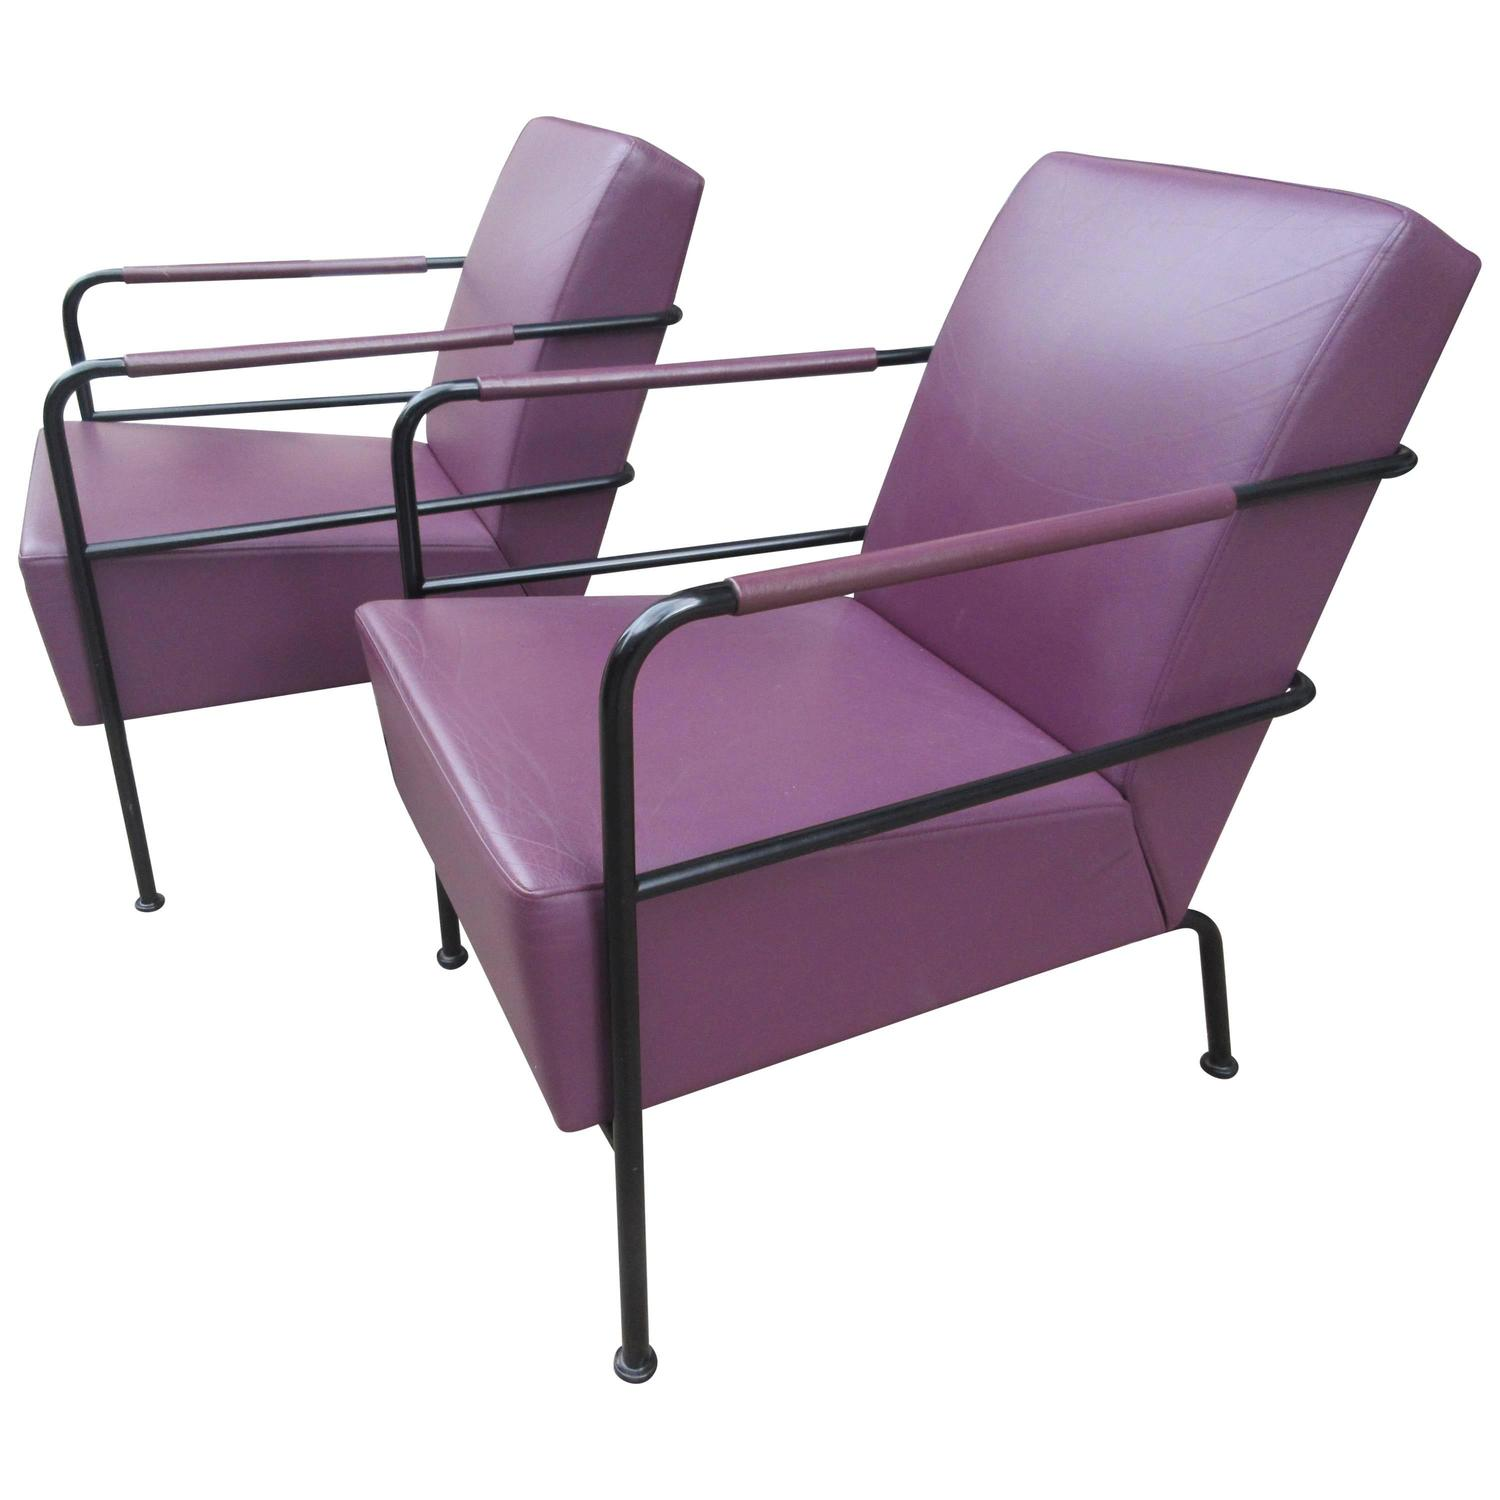 Lammhults Cinema Chair by Gunilla Allard at 1stdibs